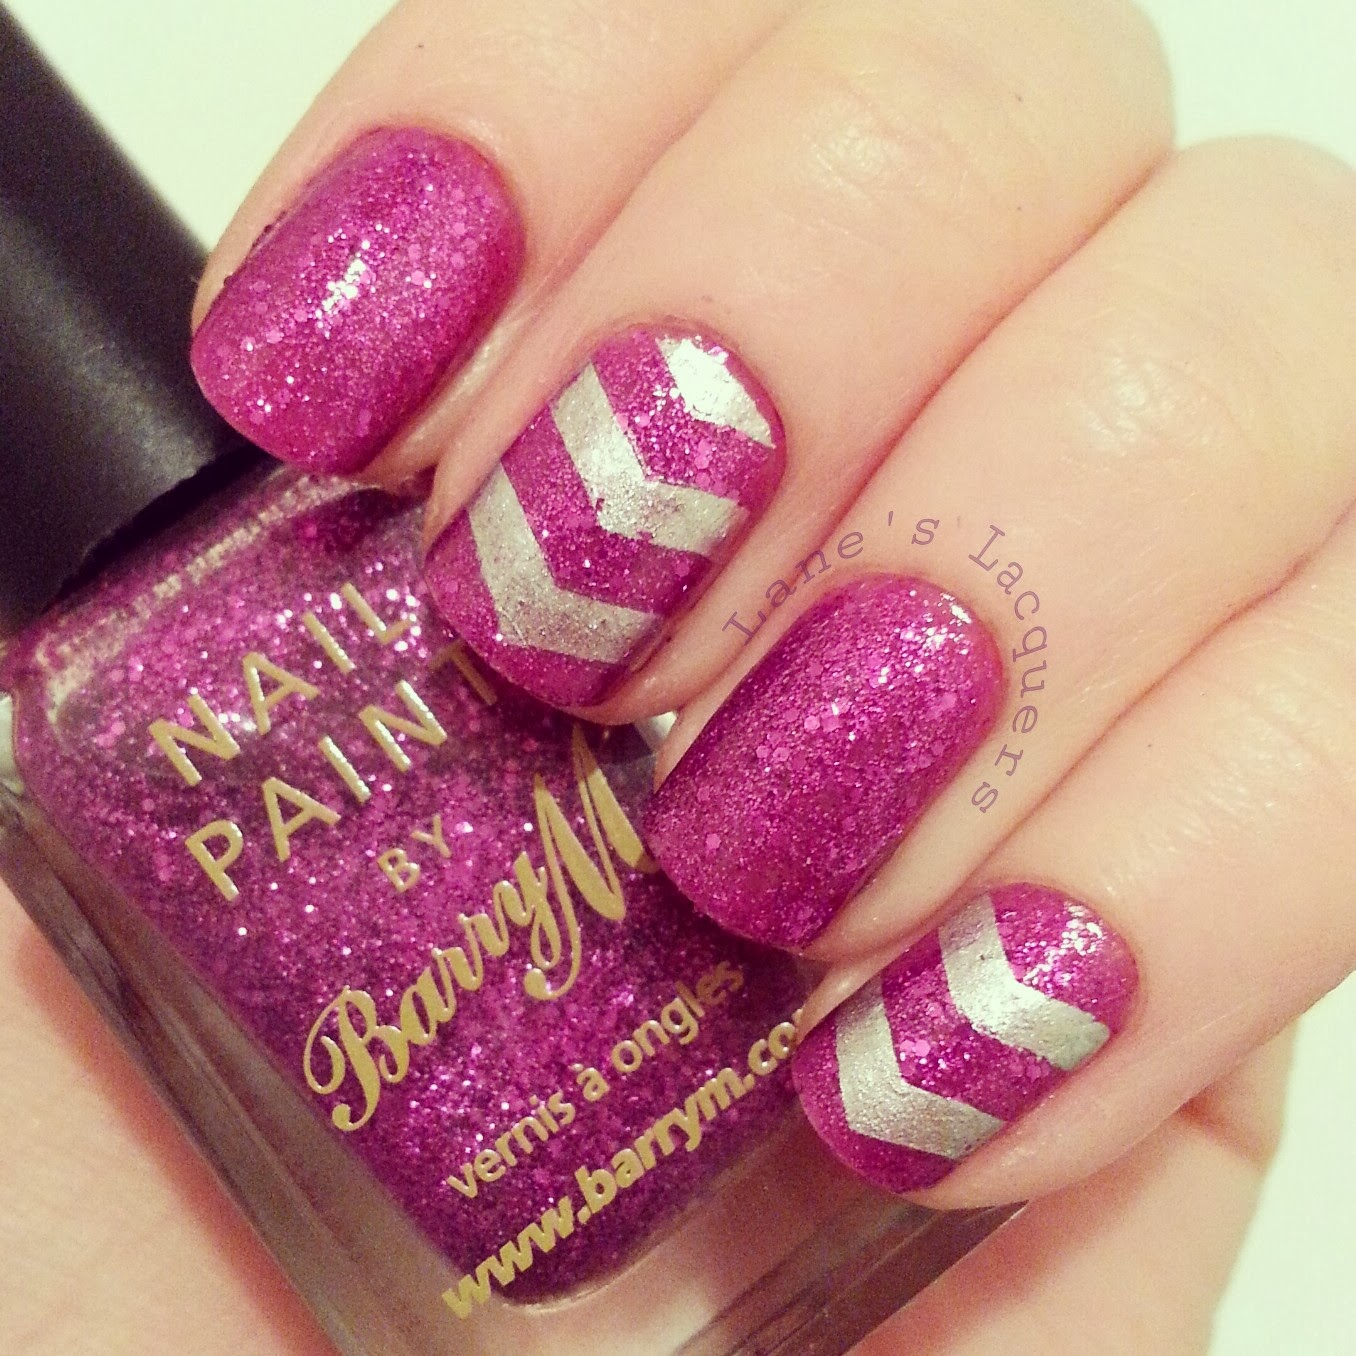 GOT-polish-challenge-glitter-chevron-nails